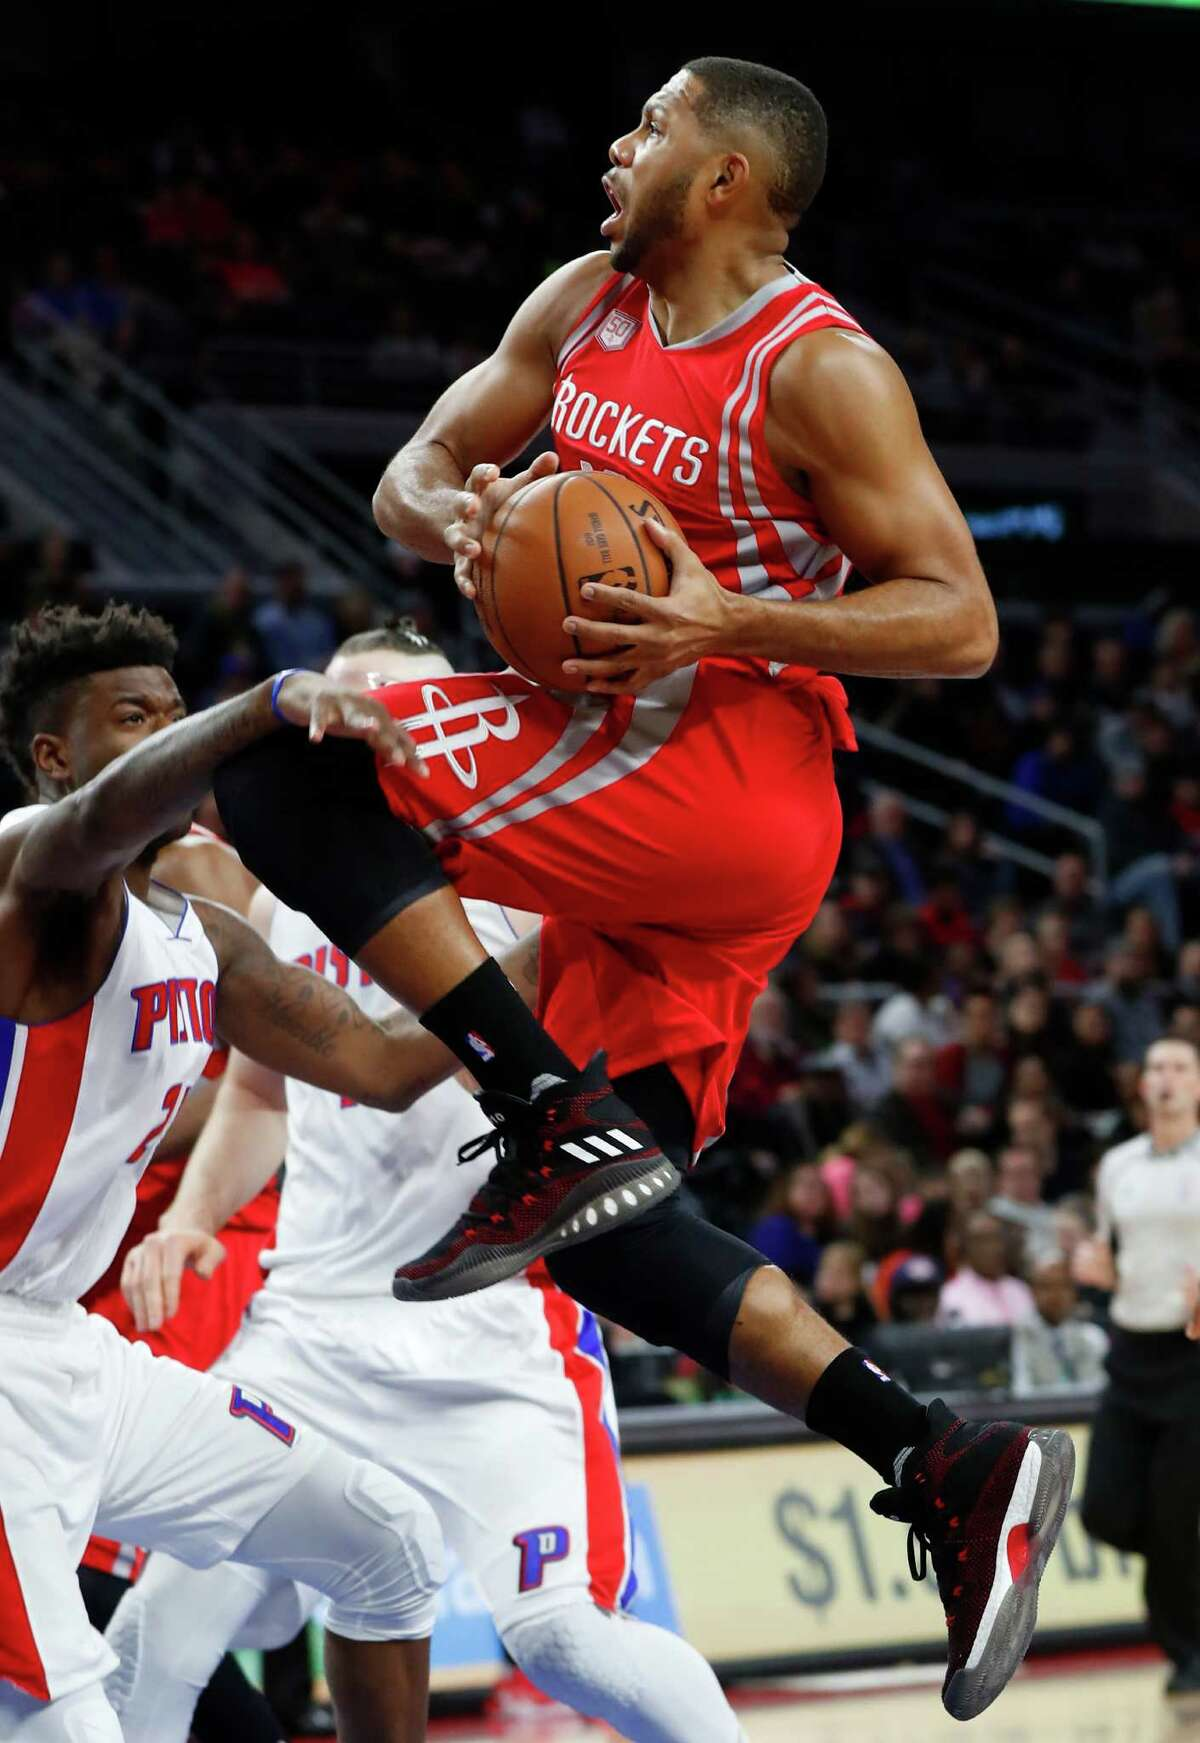 Houston Rockets guard Eric Gordon (10) drives against the Detroit Pistons in the first half of an NBA basketball game in Auburn Hills, Mich., Monday, Nov. 21, 2016. (AP Photo/Paul Sancya)